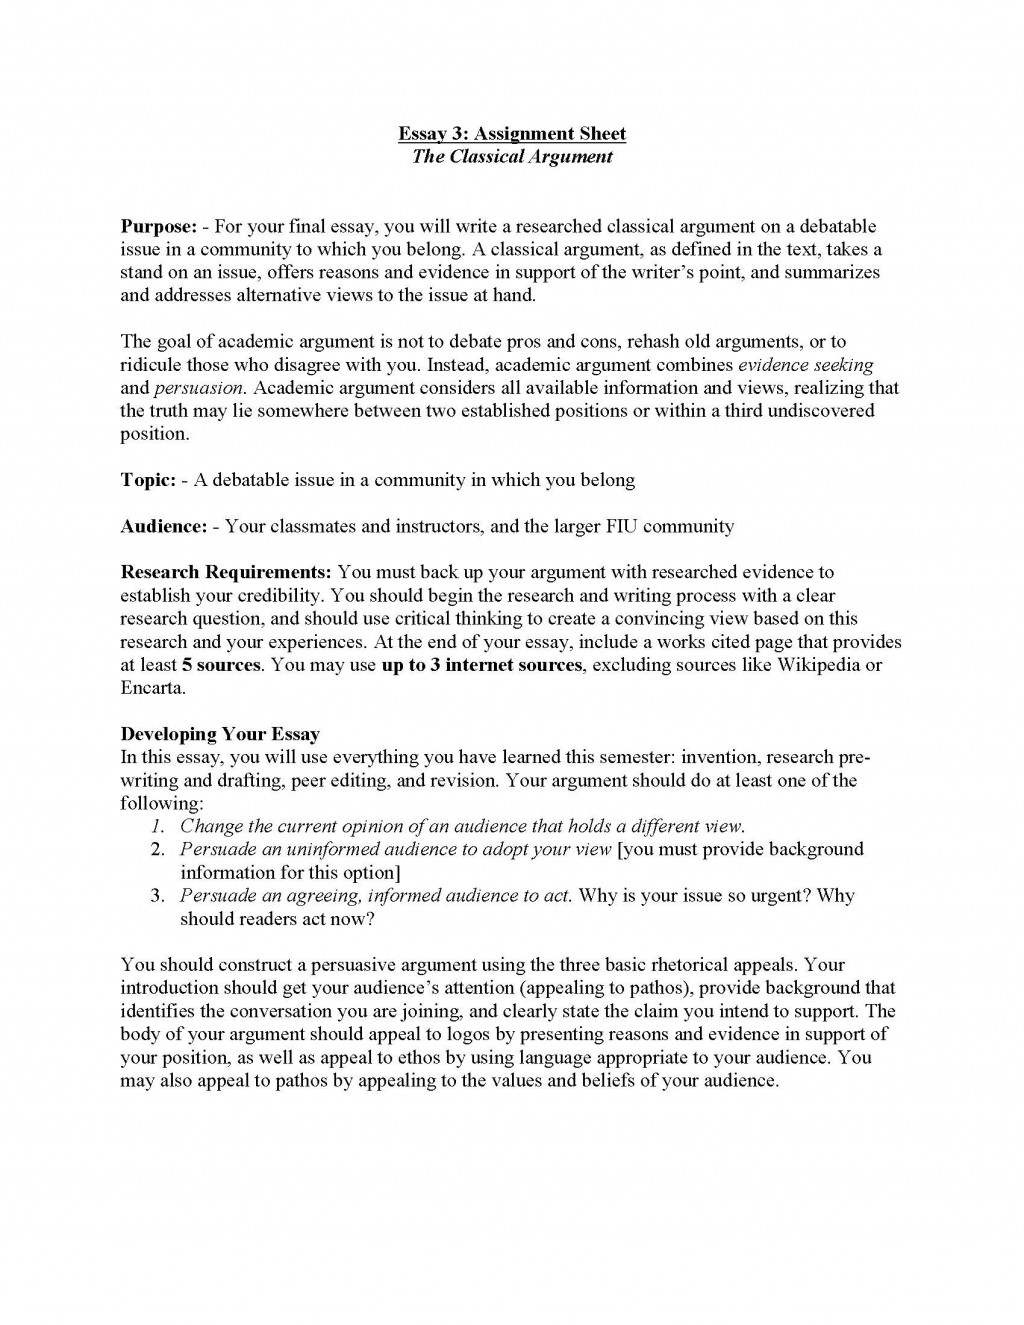 012 Classical Argument Unit Assignment Page 1 Essay Example What Is Breathtaking Art Tolstoy Good Large